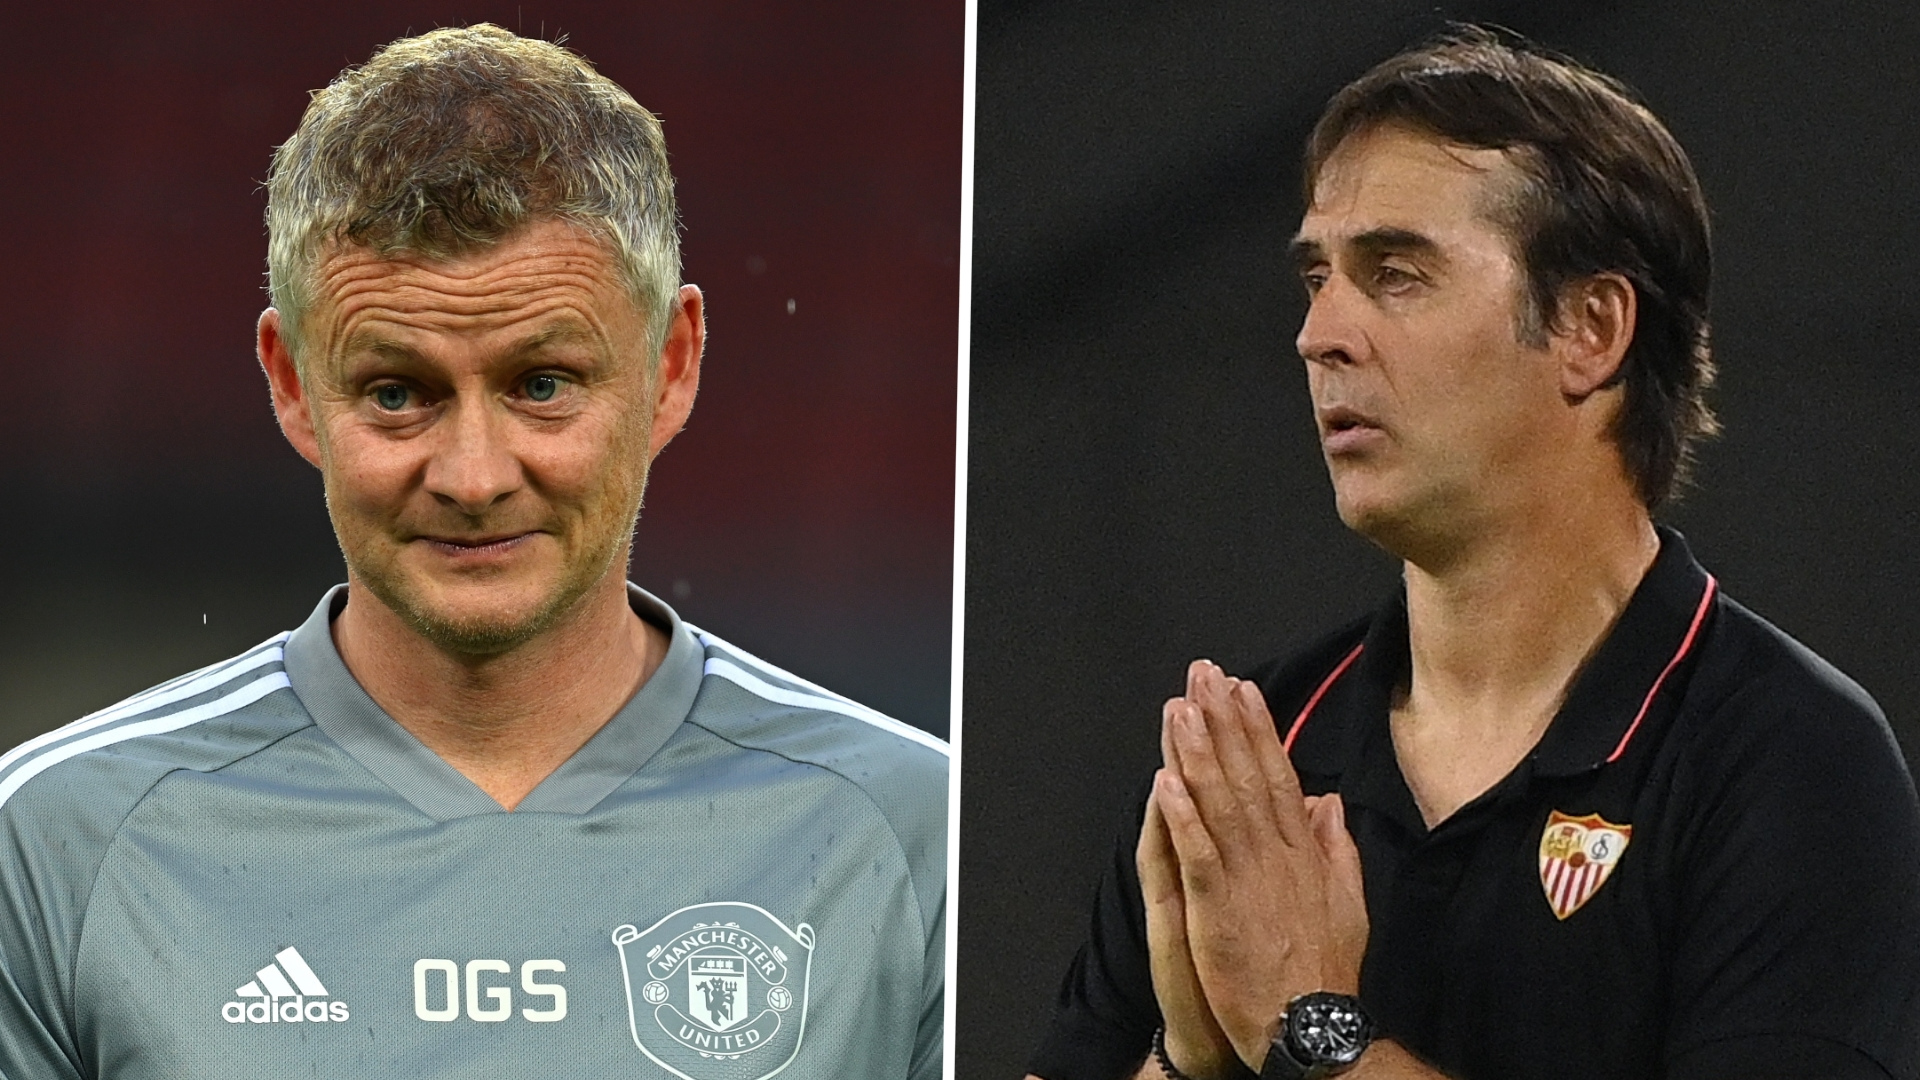 Man Utd the biggest team in the world but Sevilla ready for Europa League challenge - Lopetegui